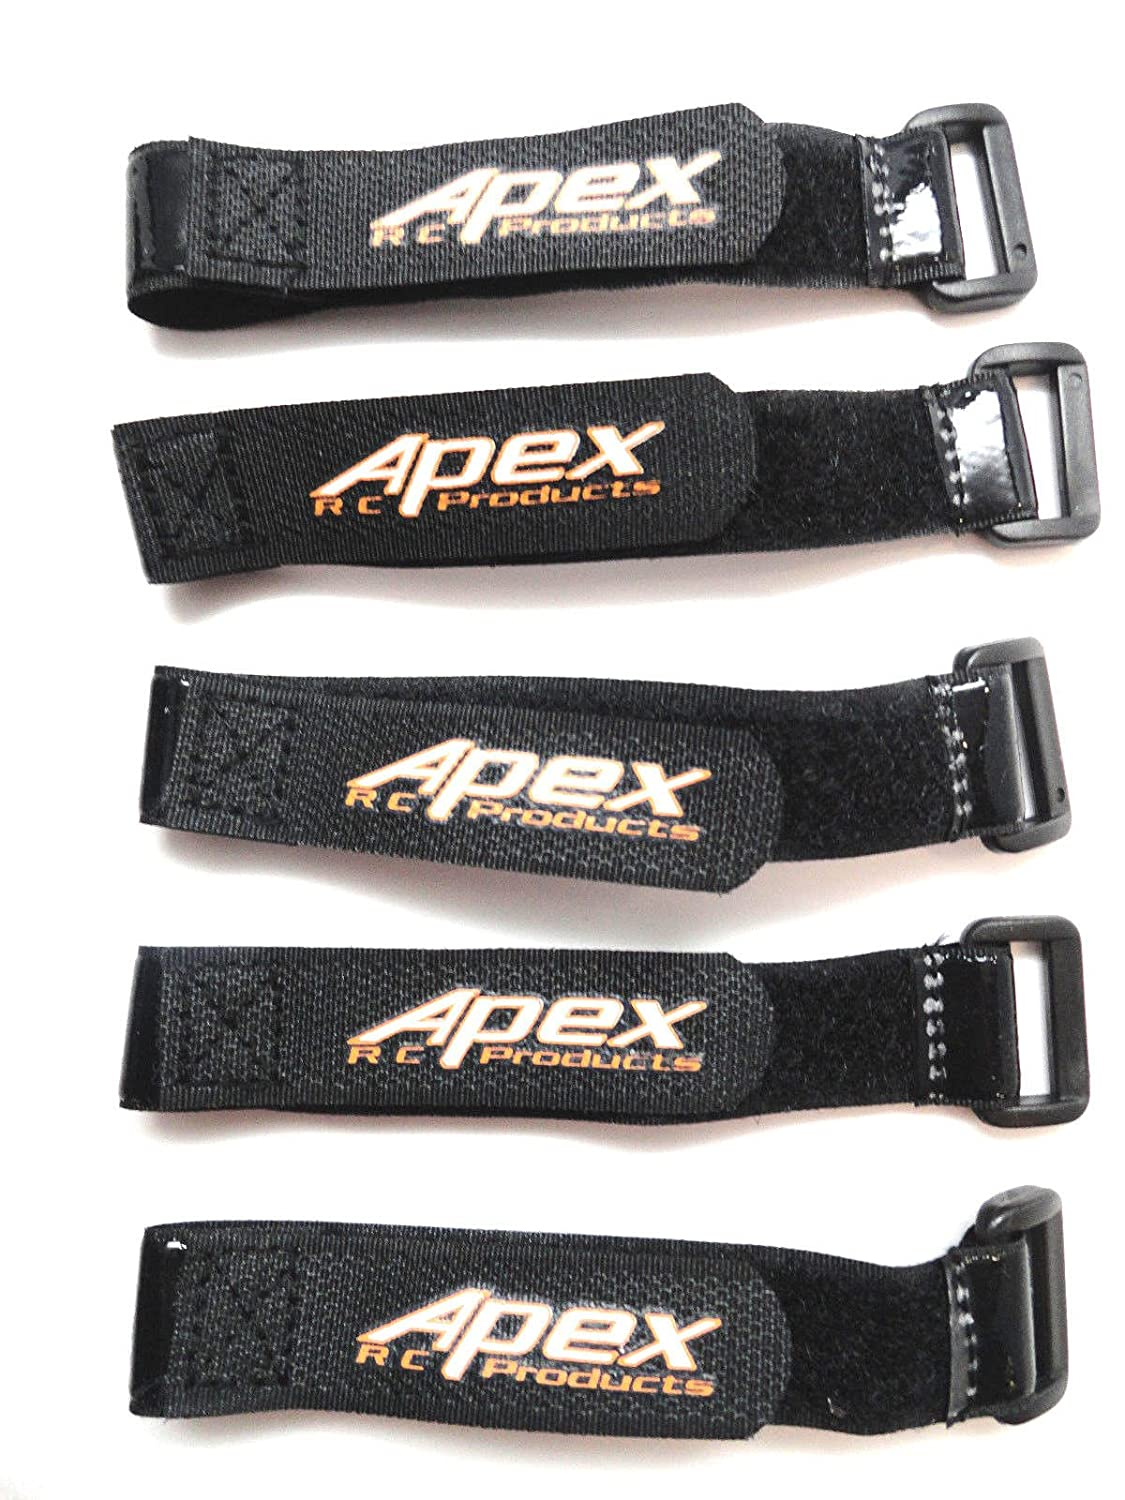 5 PACK 20mm x 200mm HD Rubberized Velcro Battery Straps Non-Slip - Apex RC Products #3030